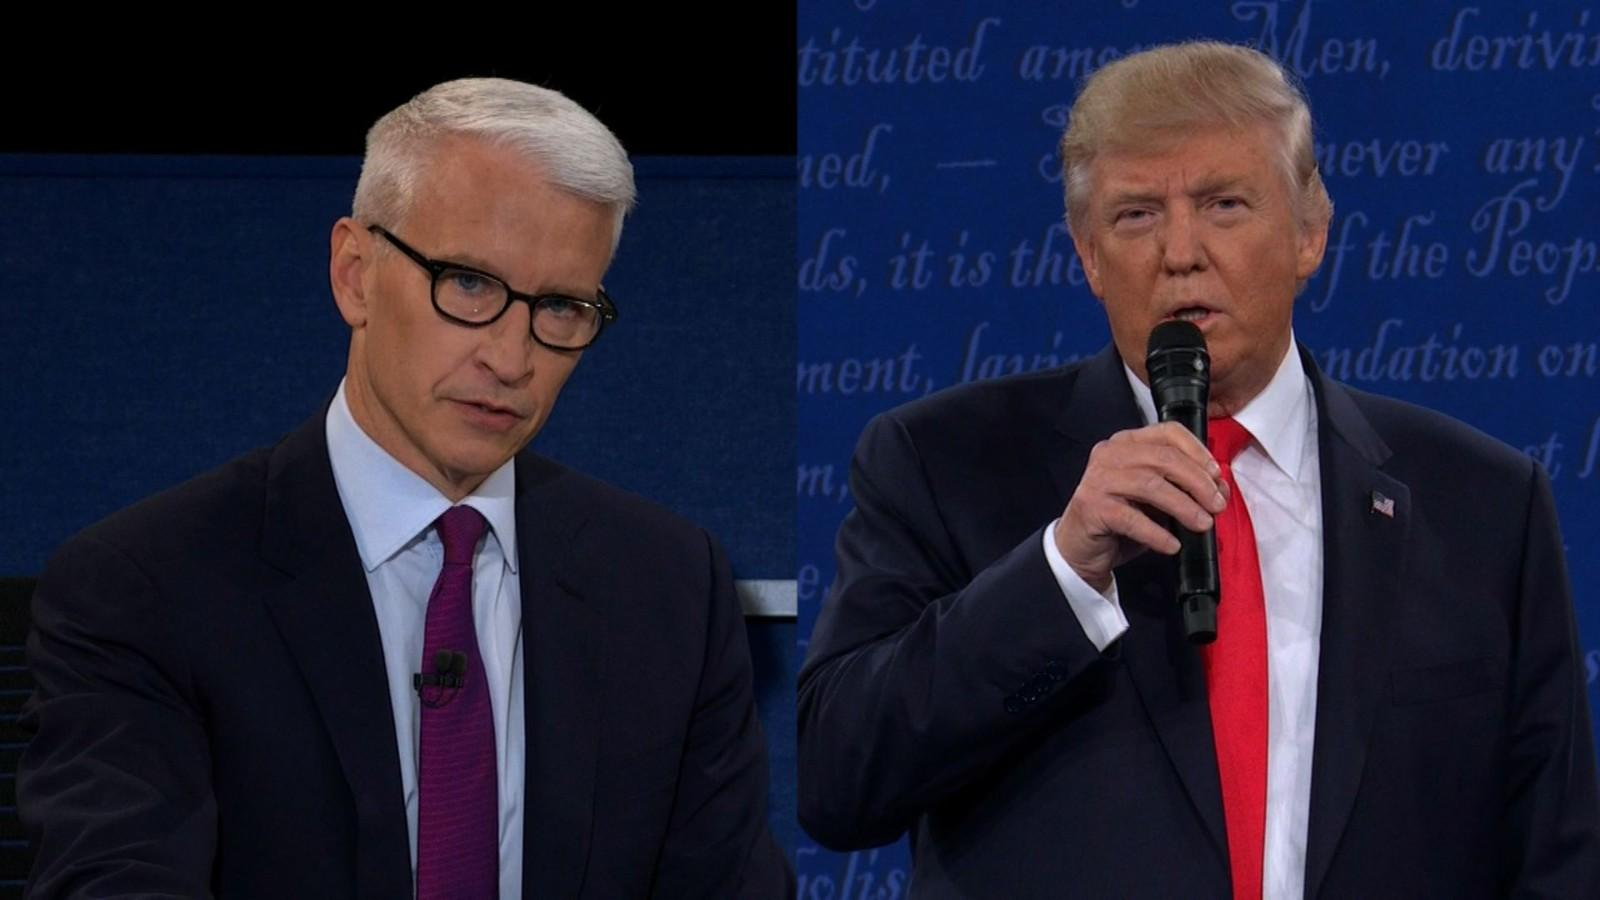 Anderson Cooper Compares Donald Trump To A Turtle 'On Its Back' Dying In The Sun And His Words Go Viral - Check Out The Memes!